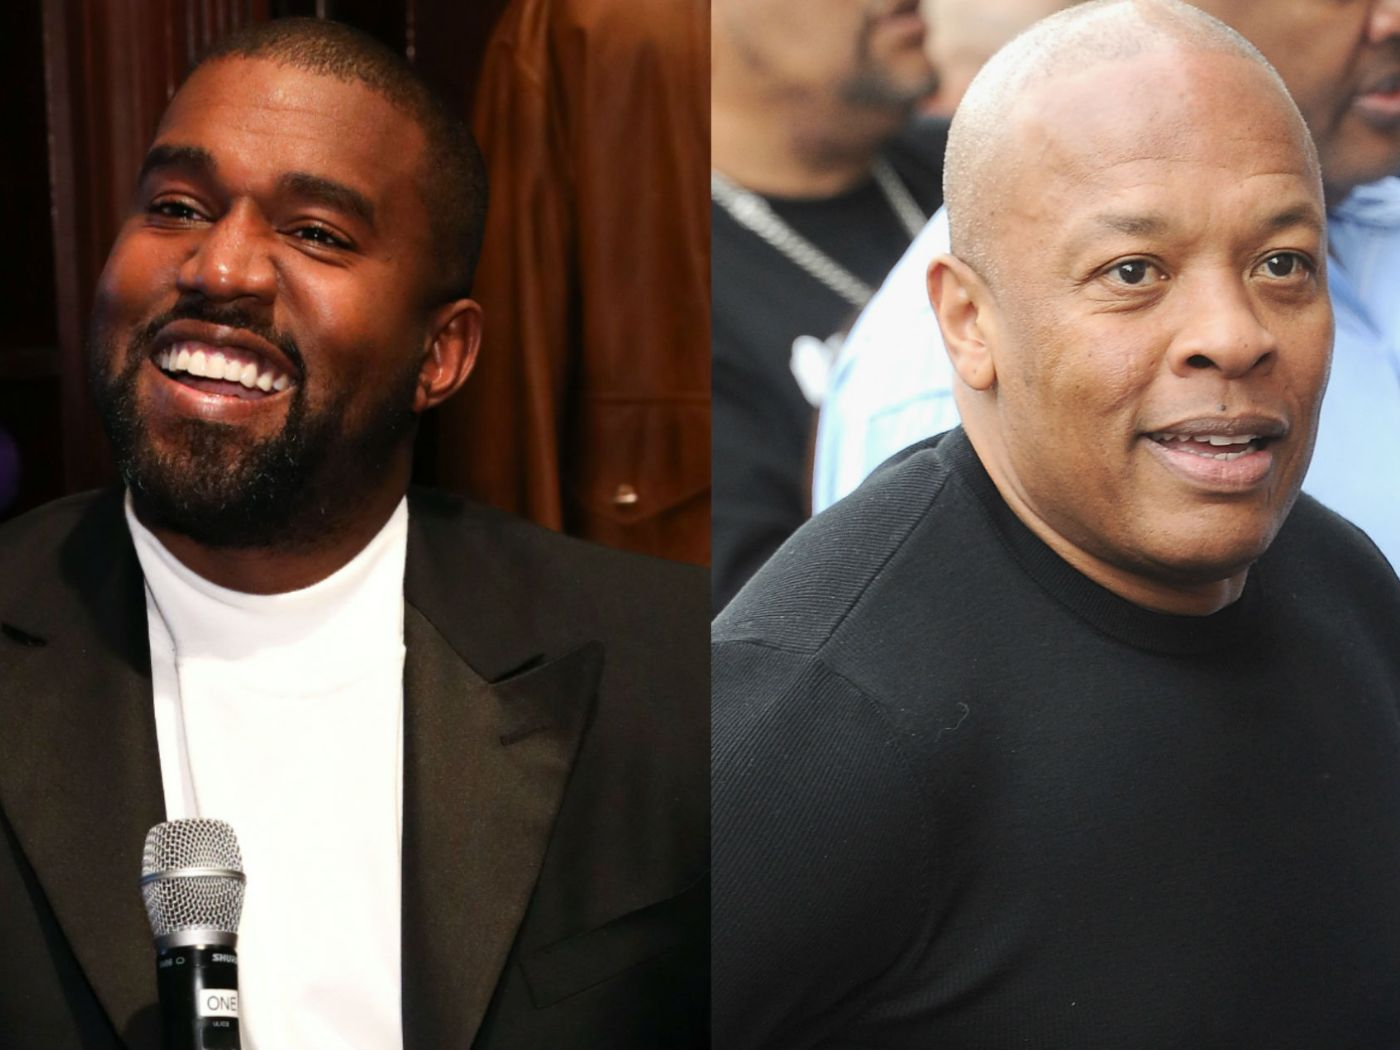 Kanye West and Dr. Dre join forces for 'Jesus Is King Part II' project